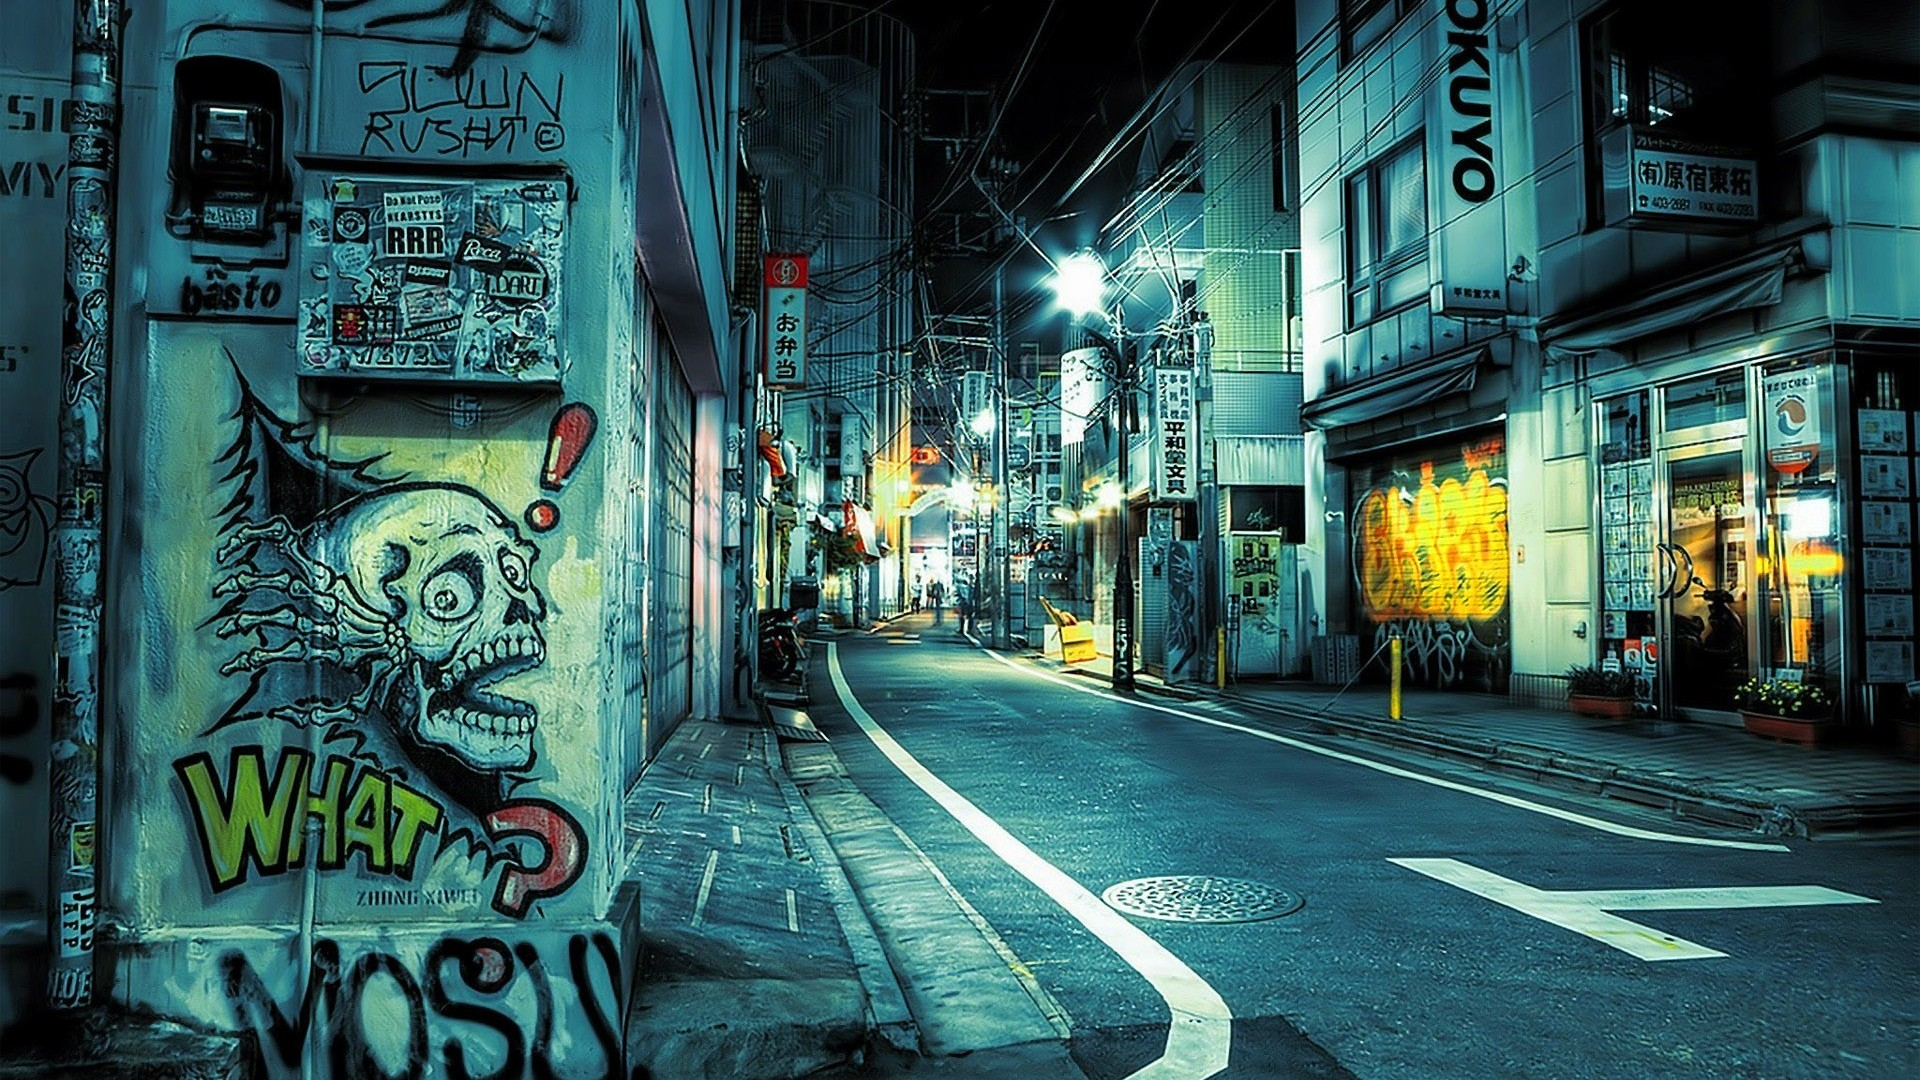 Street Full HD Wallpaper And Background Image